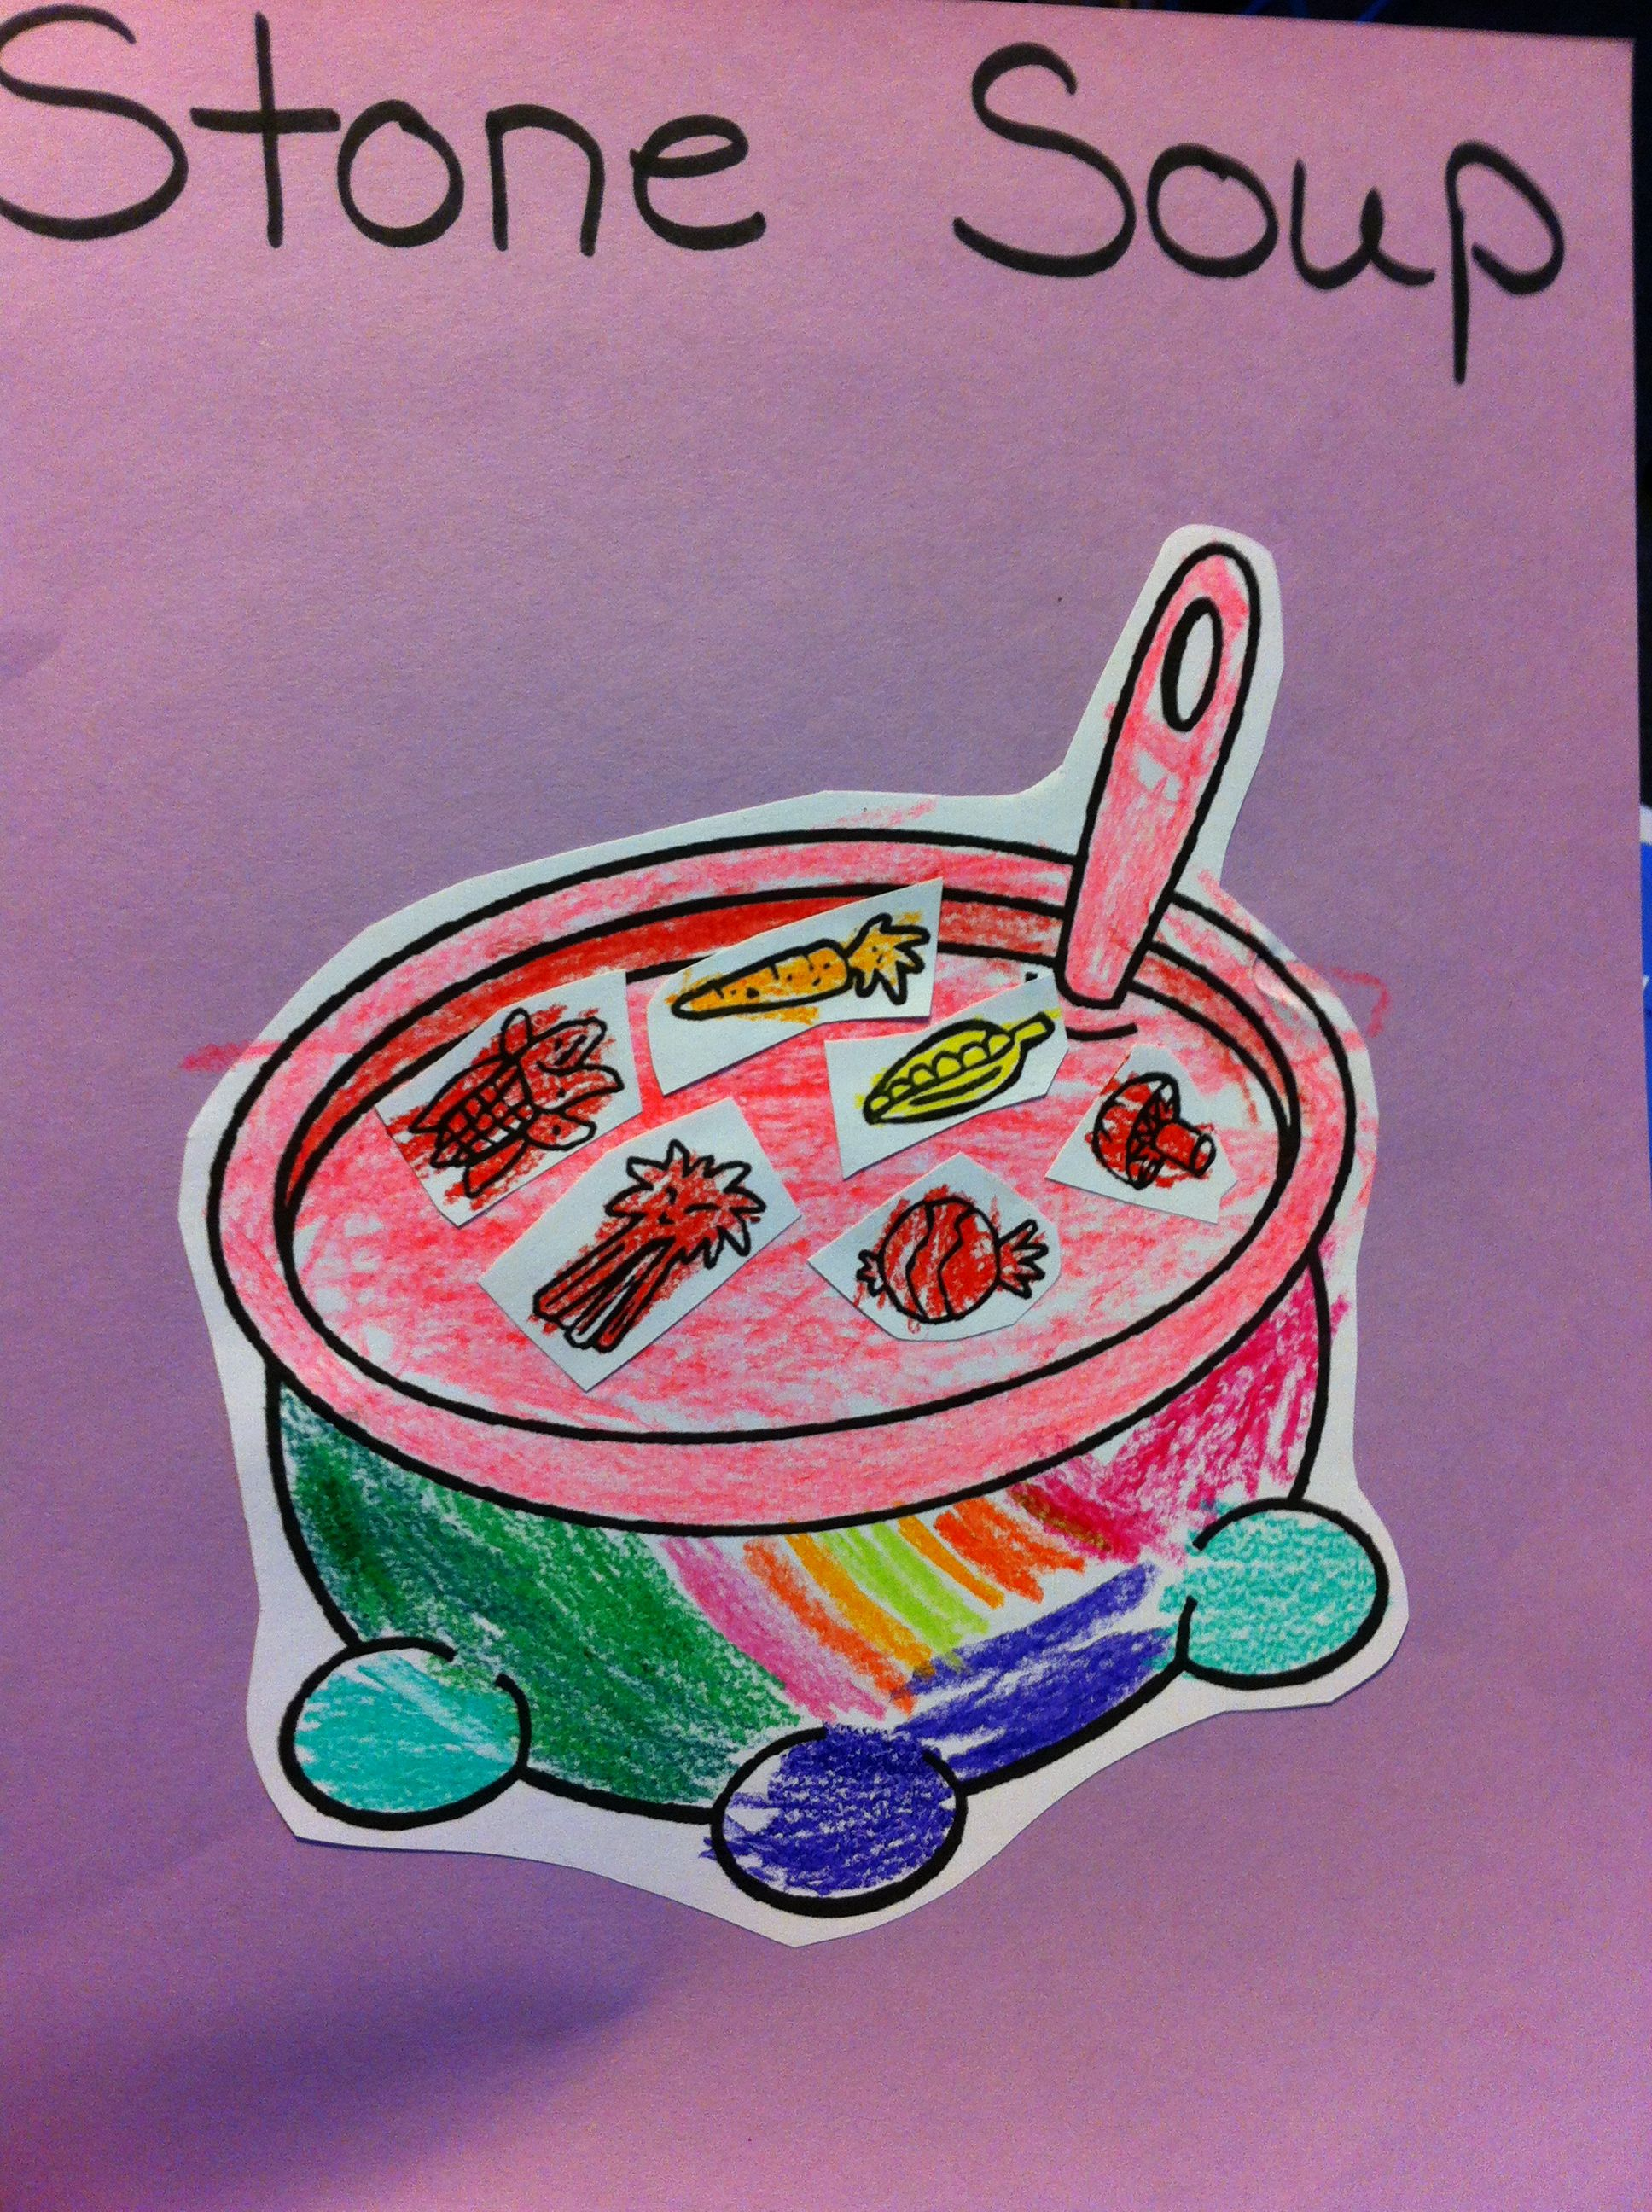 Stone Soup First We Read The Story Stone Soup And Then